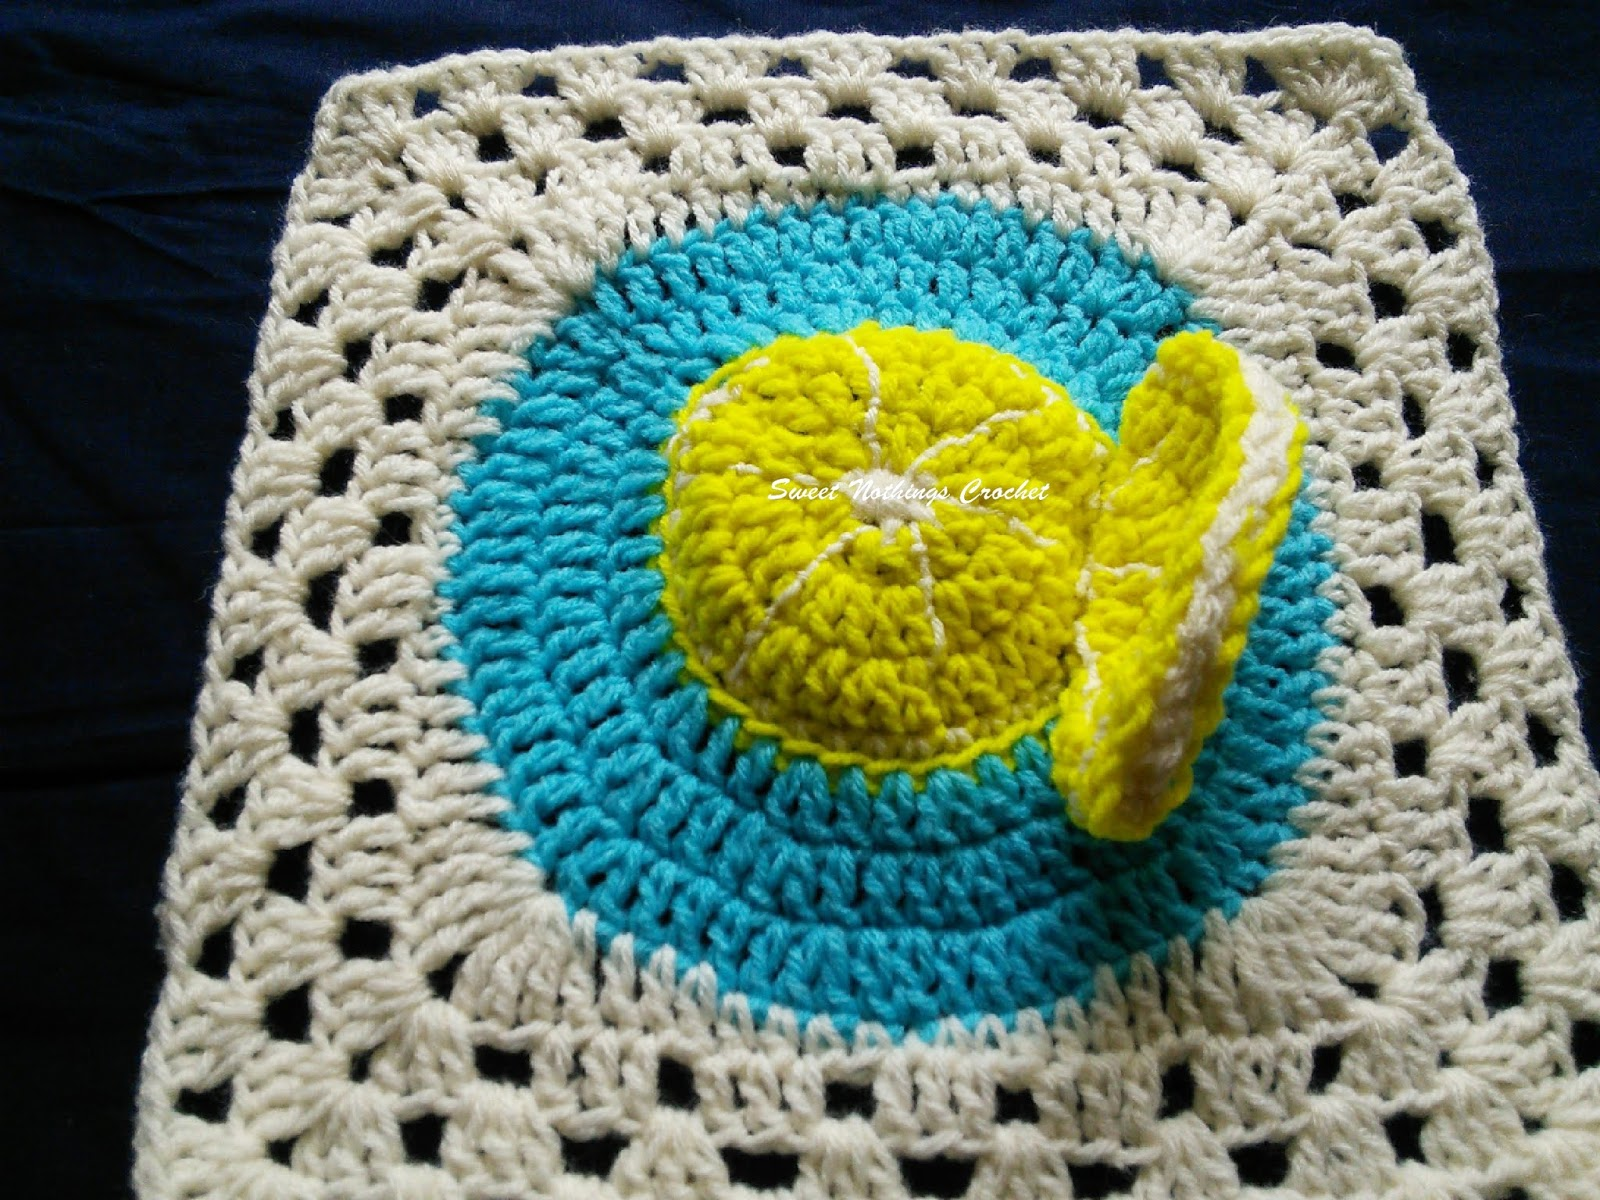 Free Crochet Granny Square Patterns New Design Inspiration